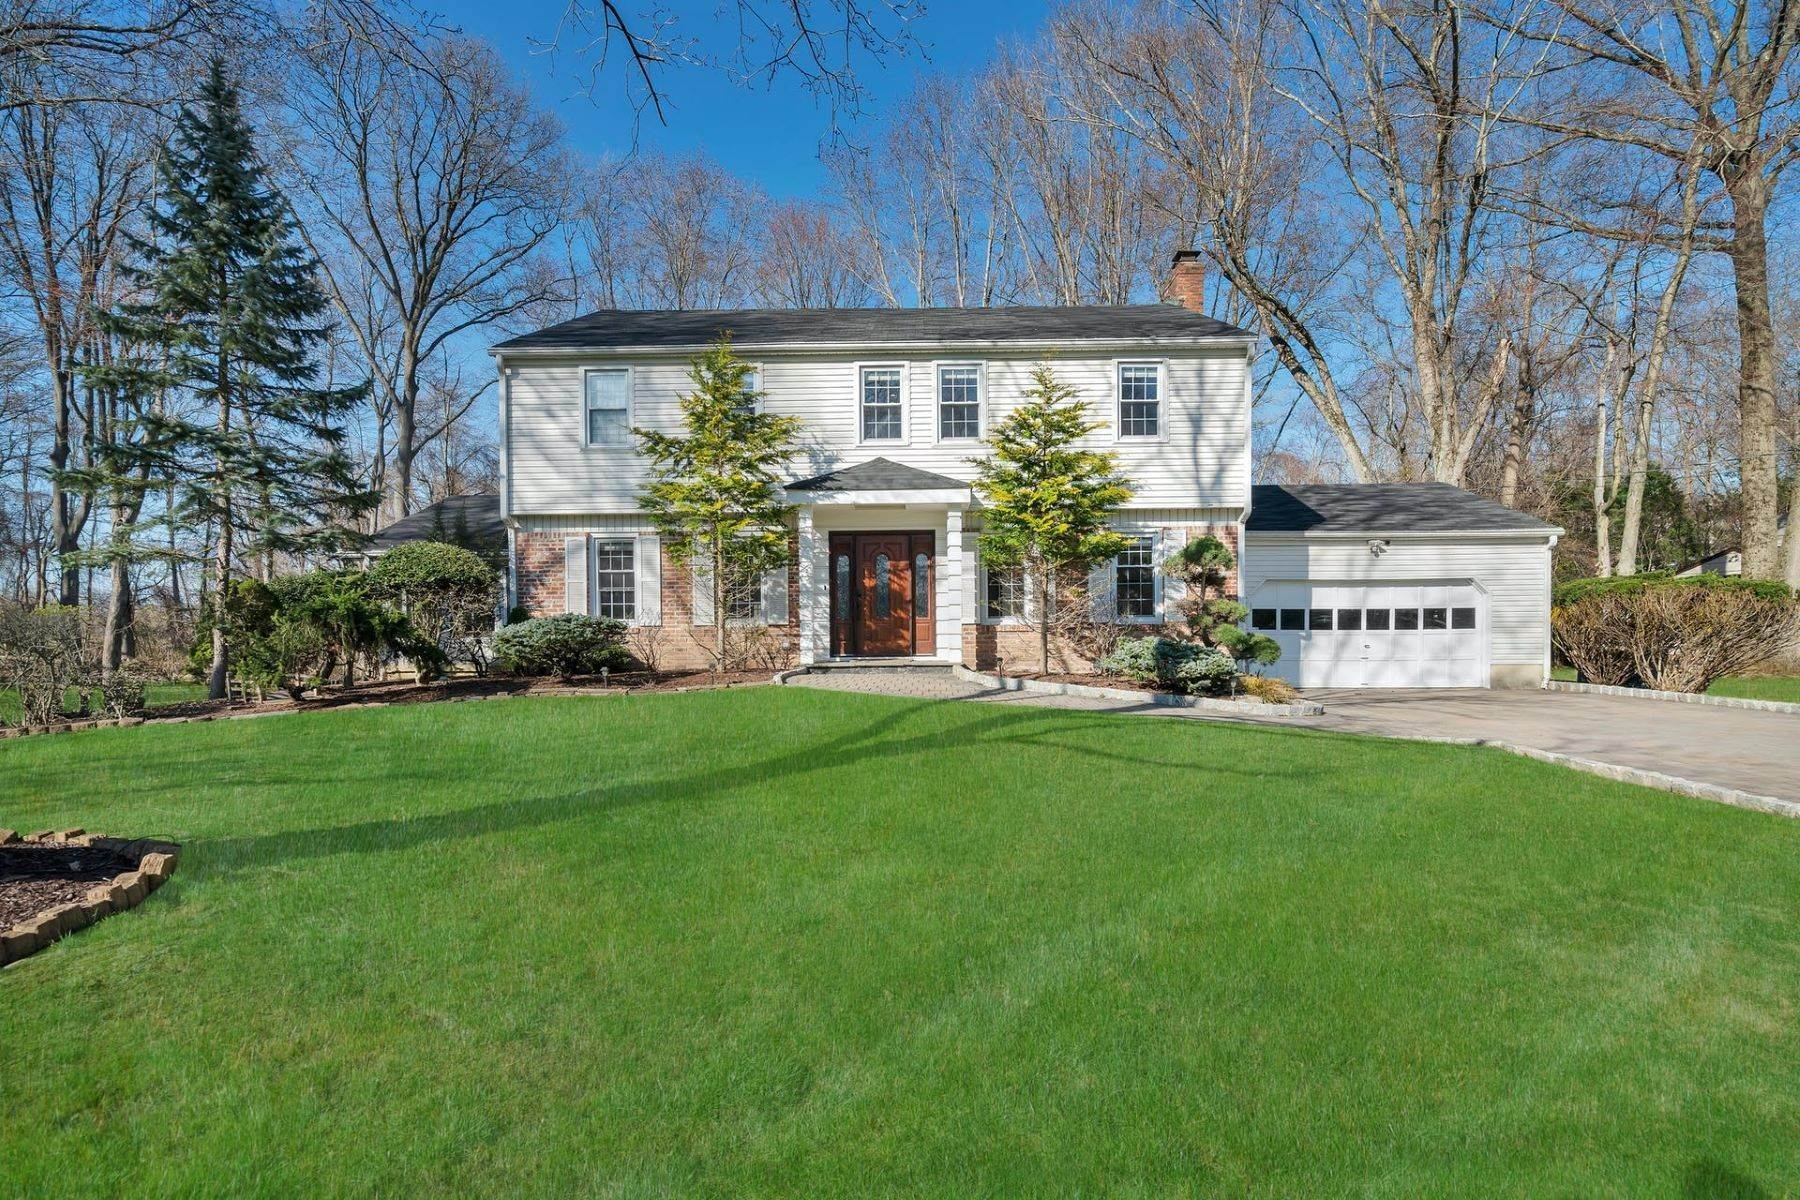 Single Family Homes for Sale at Beautifully Renovated! 67 Fairway Ter Norwood, New Jersey 07648 United States